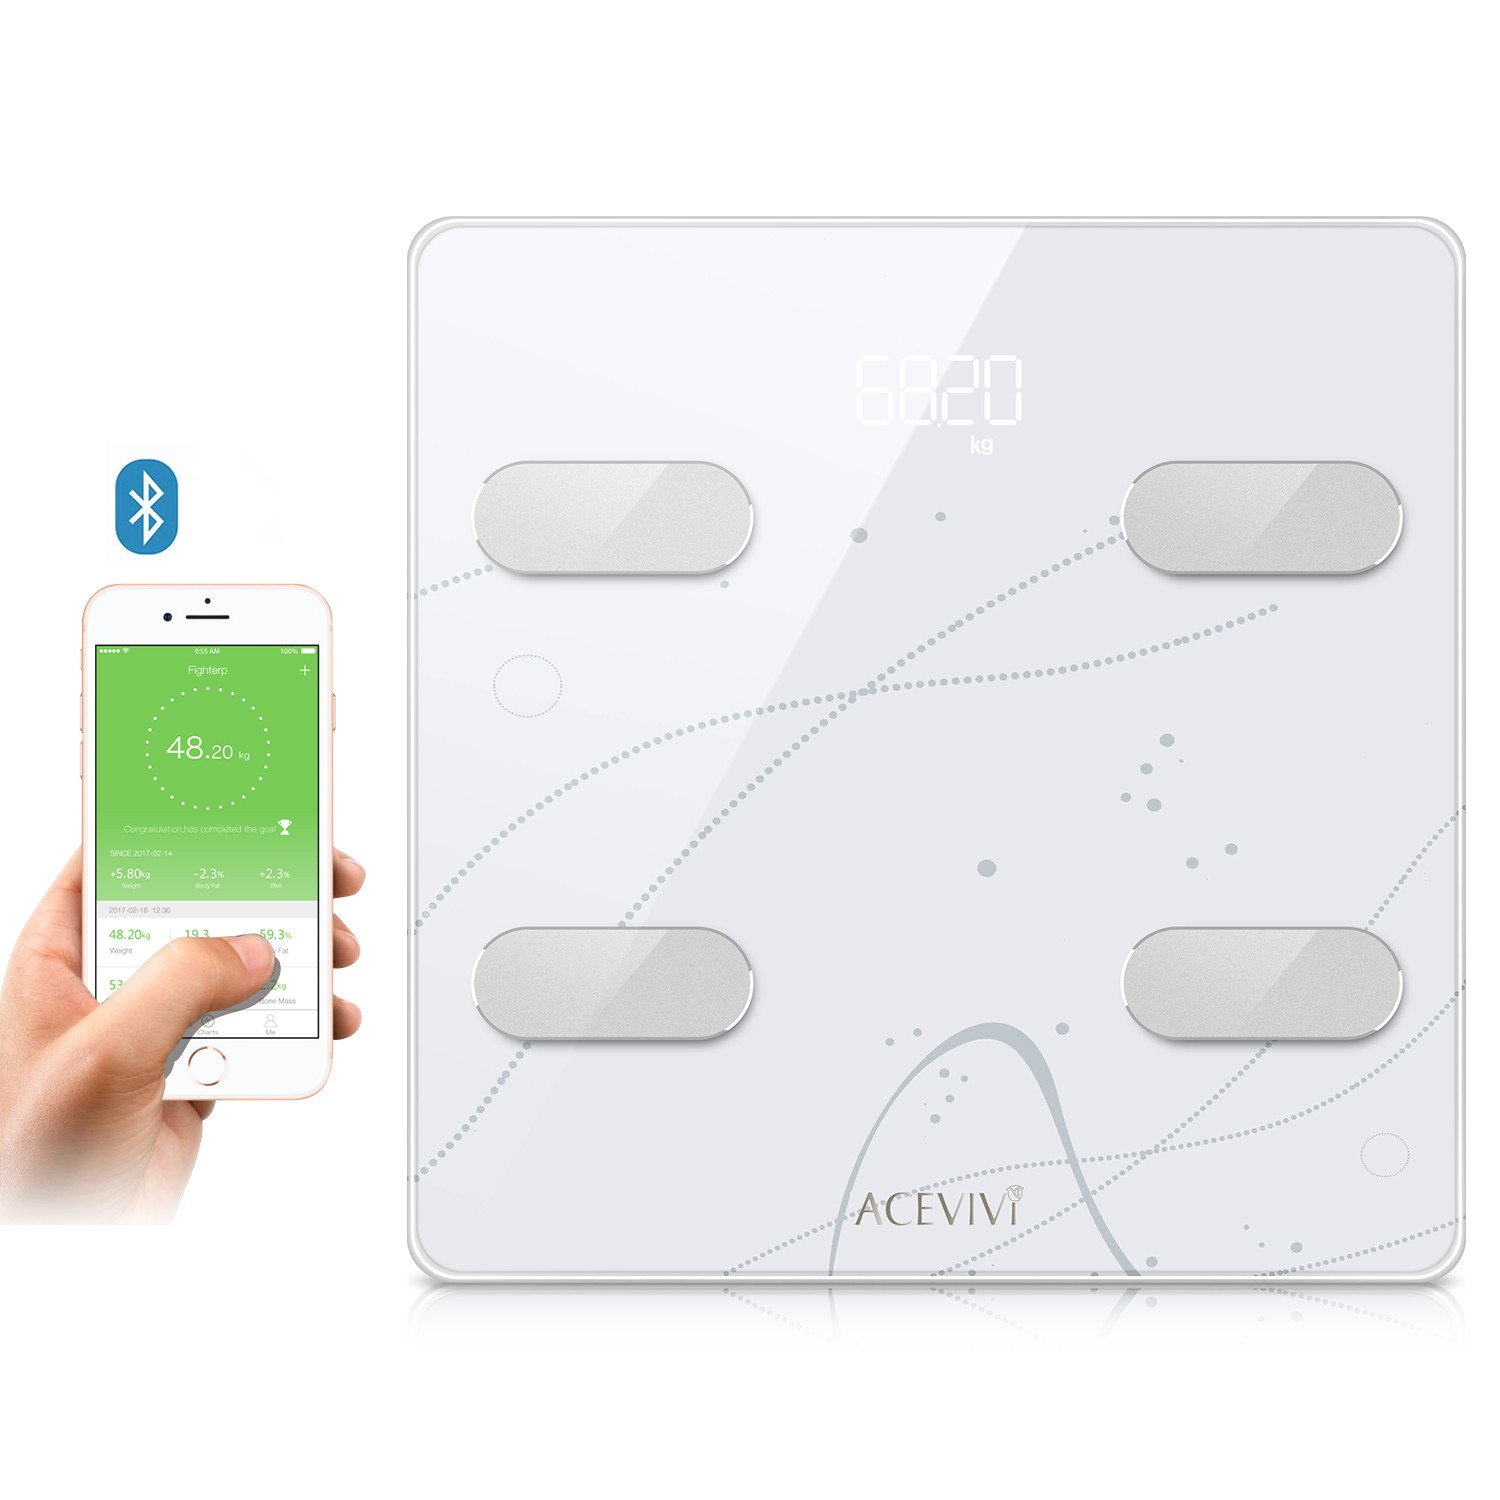 Weight Body Fat Scale, Digital Bathroom Scale Bluetooth, Smart BMI Scale Body Composition Analyzer Support Fitbit, Apple Health, Google Fit